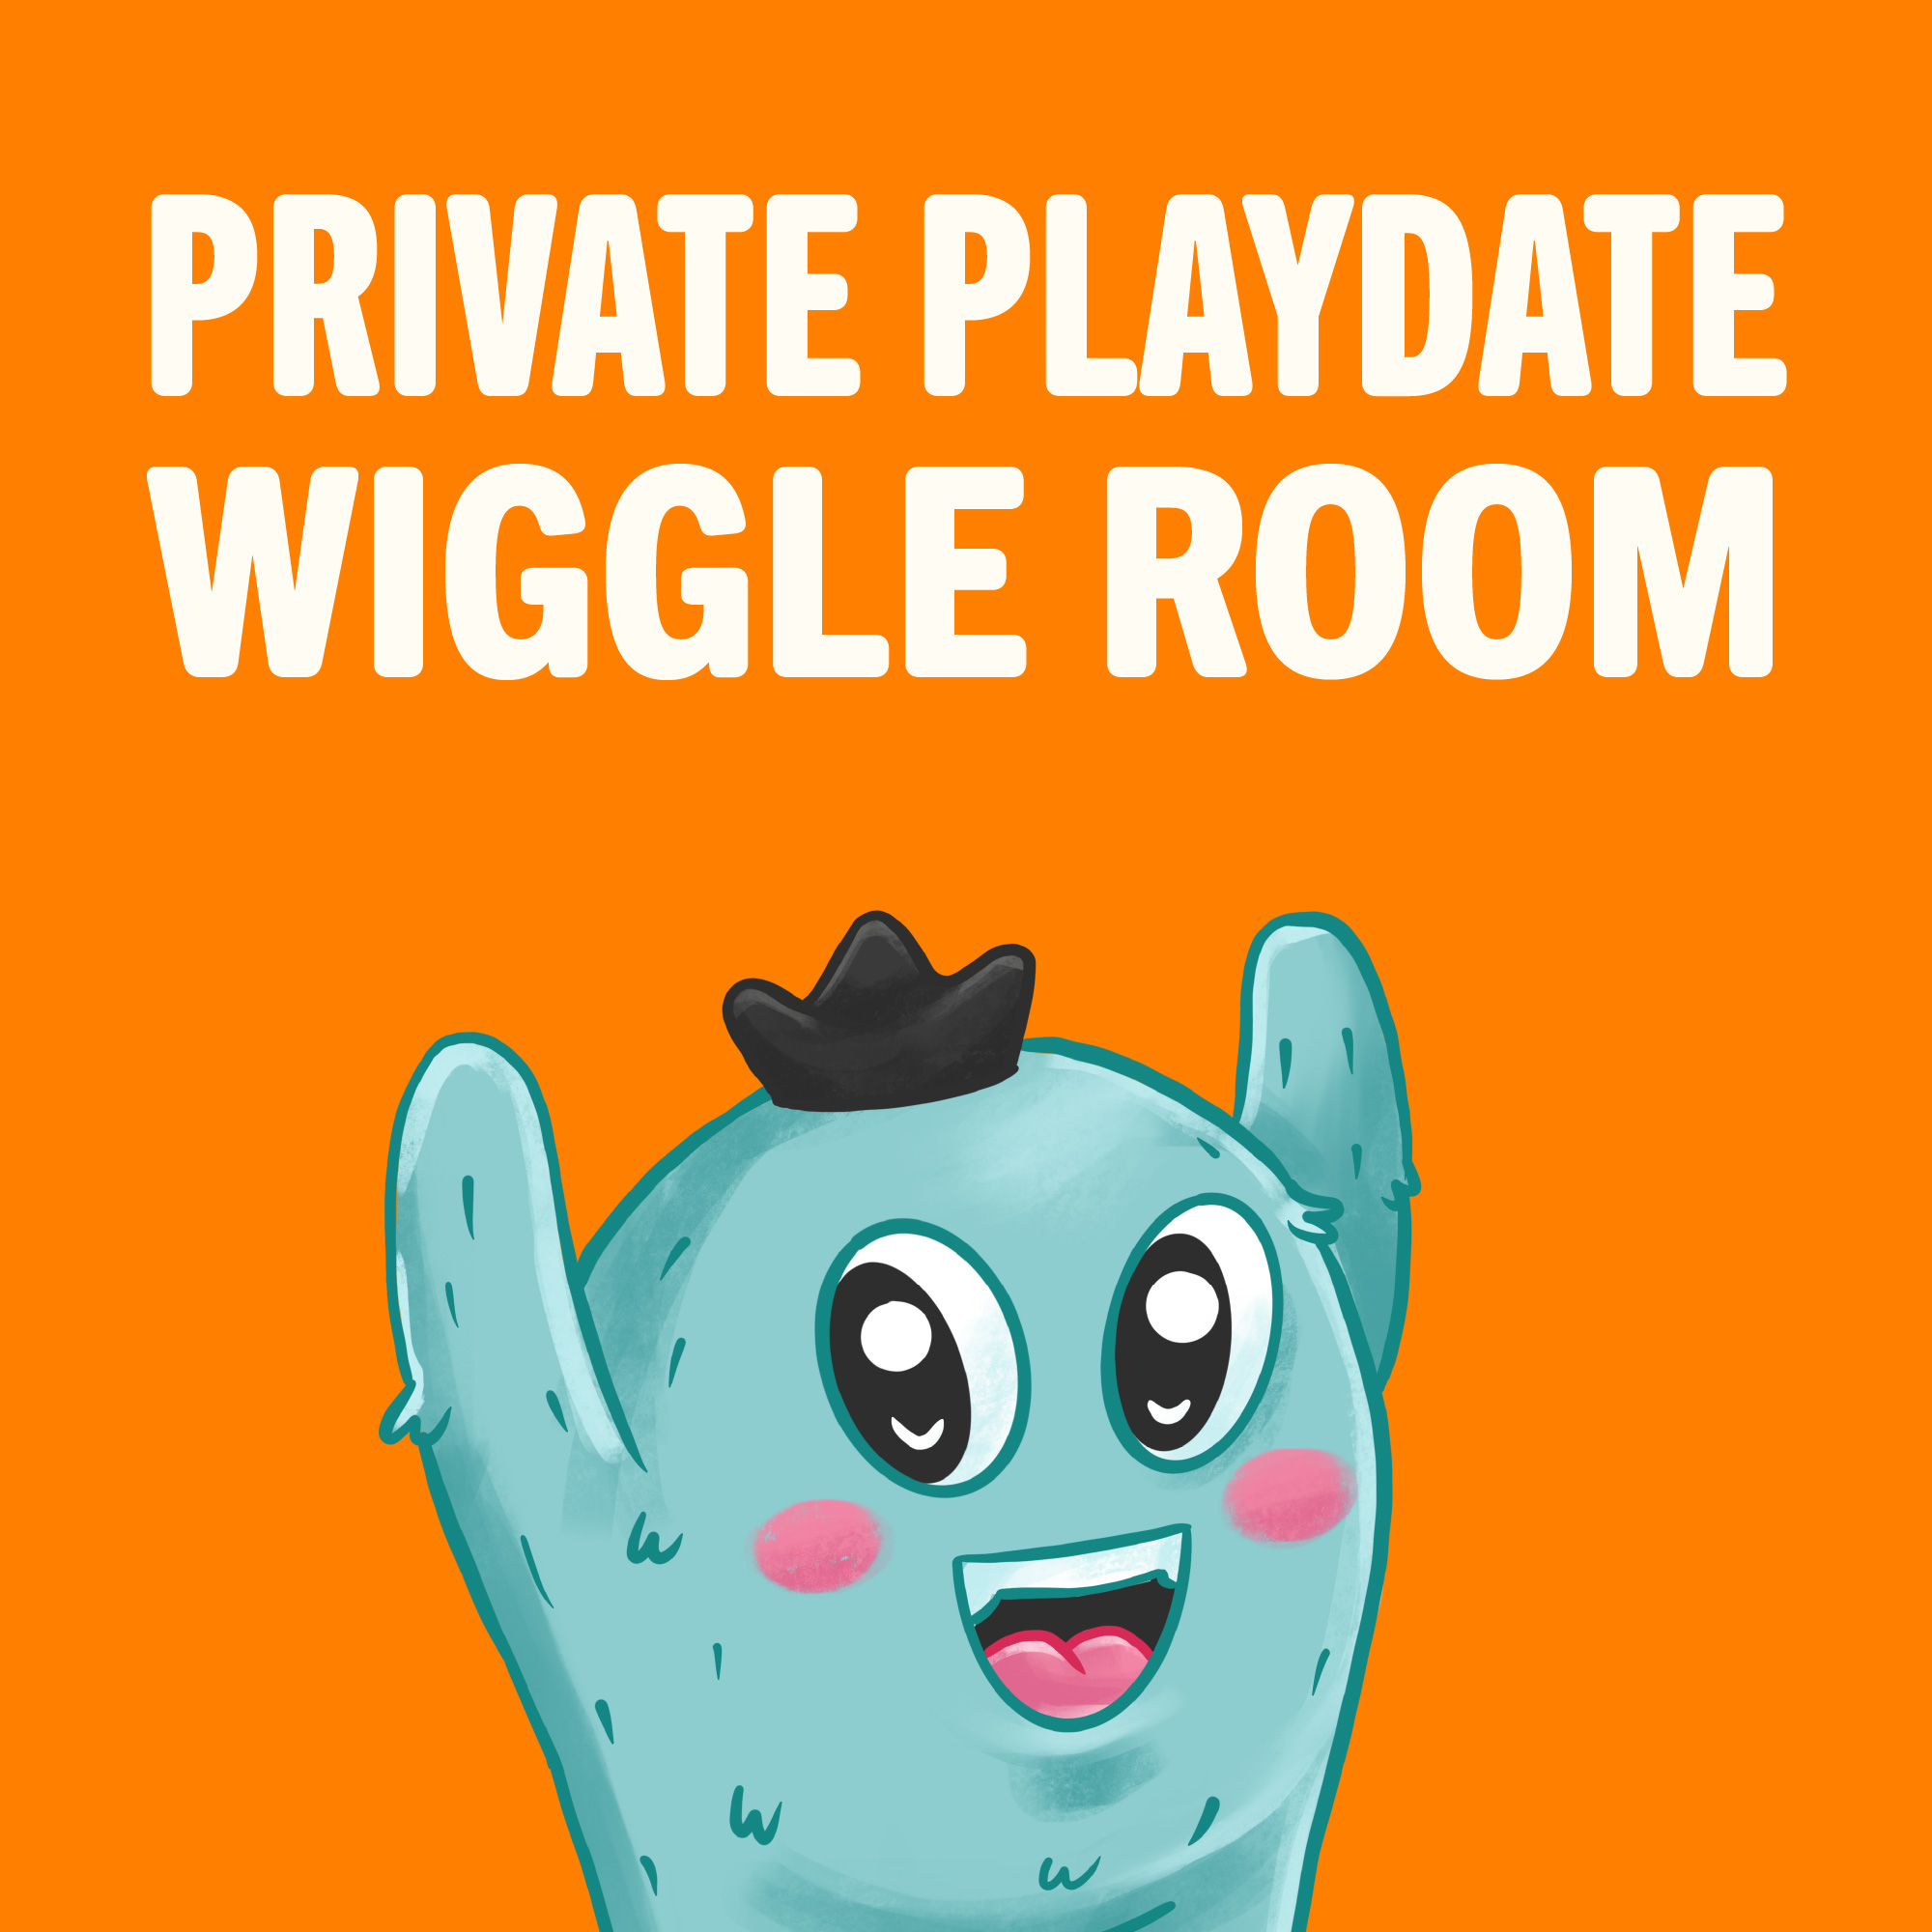 Play Date - Wiggle Room